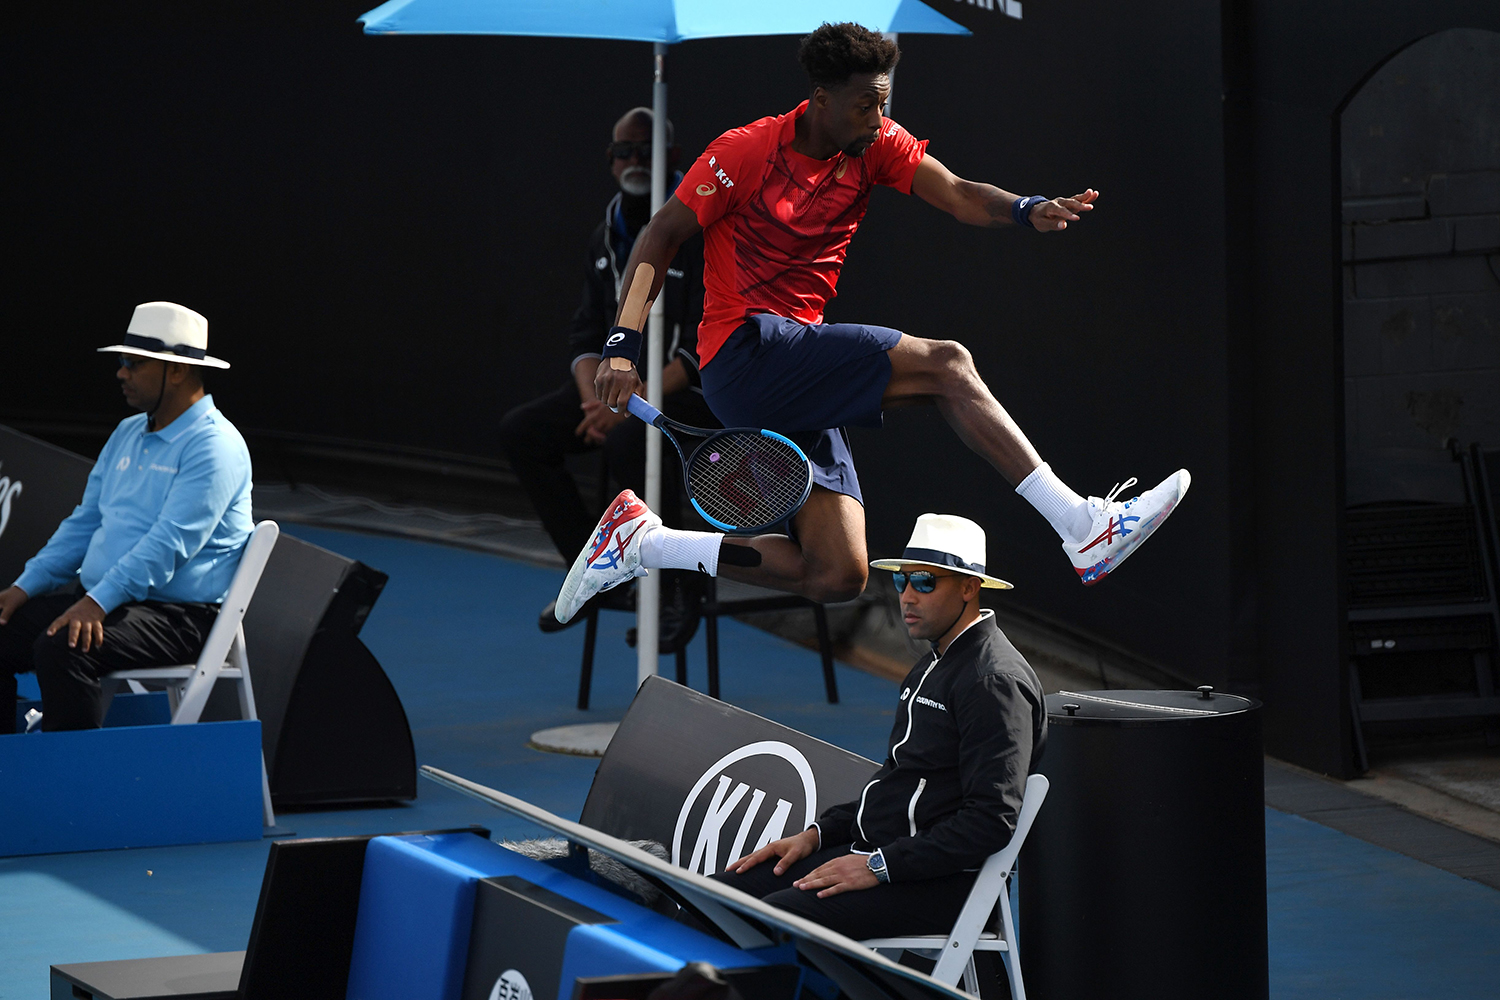 France's Gael Monfils jumps off the court during his men's singles match against Croatia's Ivo Karlovic during the Australian Open tennis tournament in Melbourne on Jan. 23. WILLIAM WEST/AFP via Getty Images